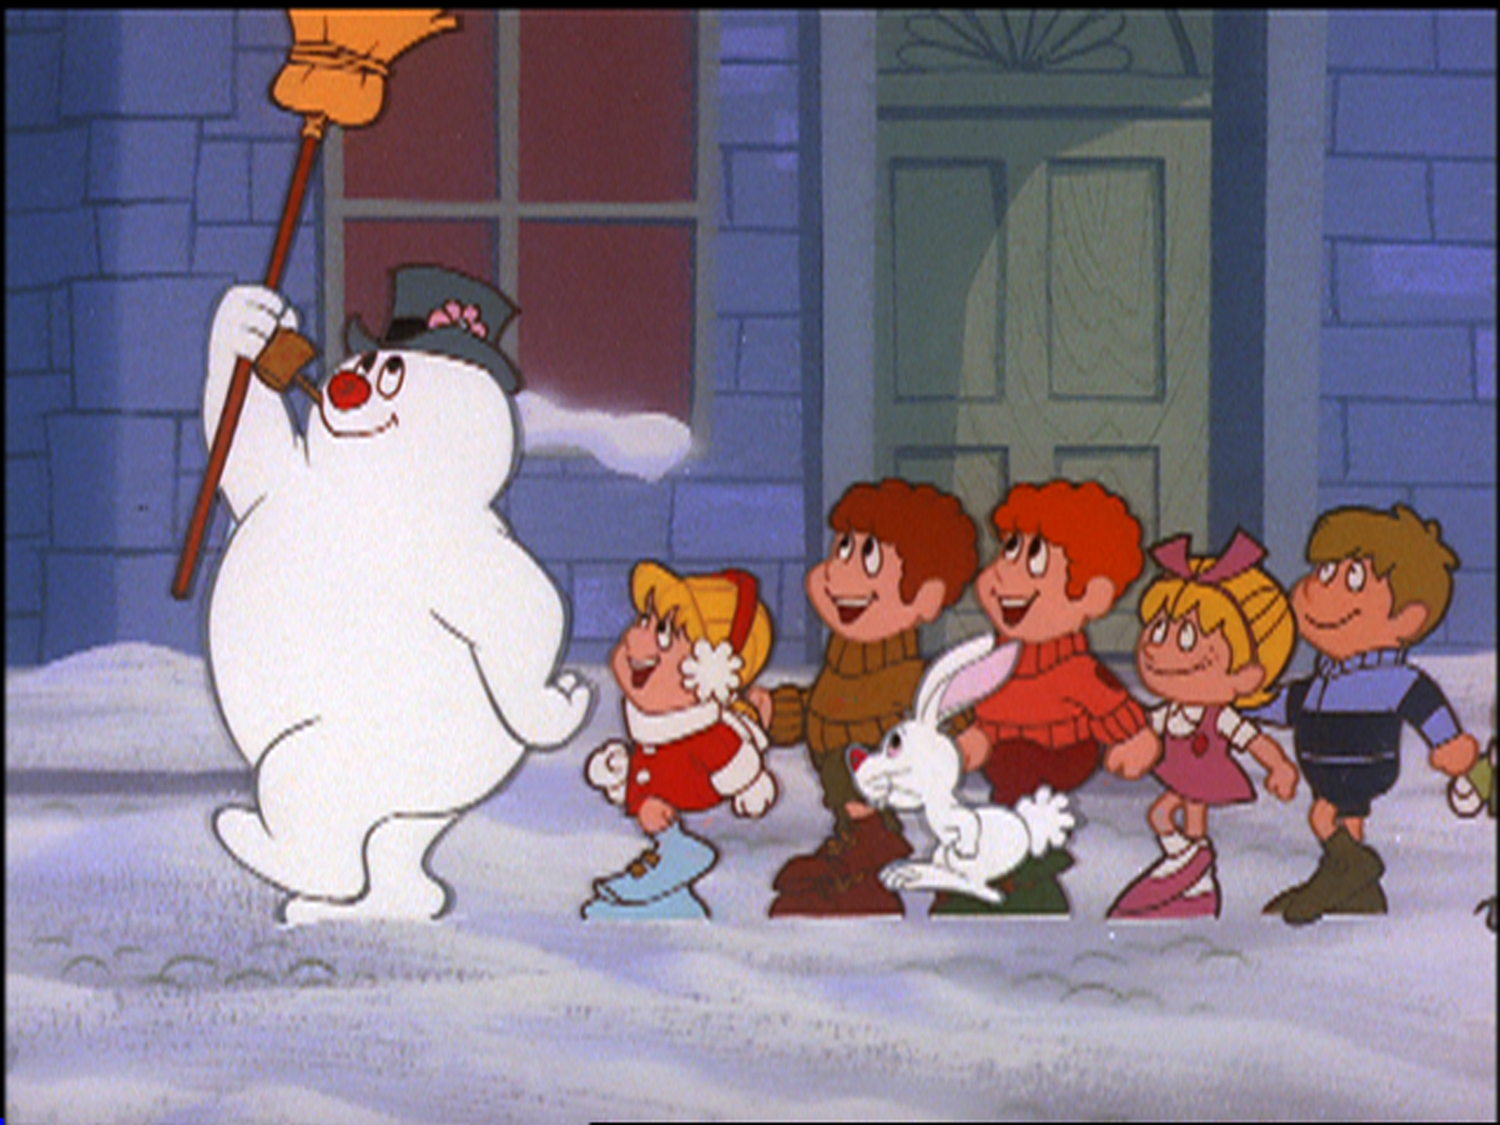 17 frosty the snowman - Best Animated Christmas Movies